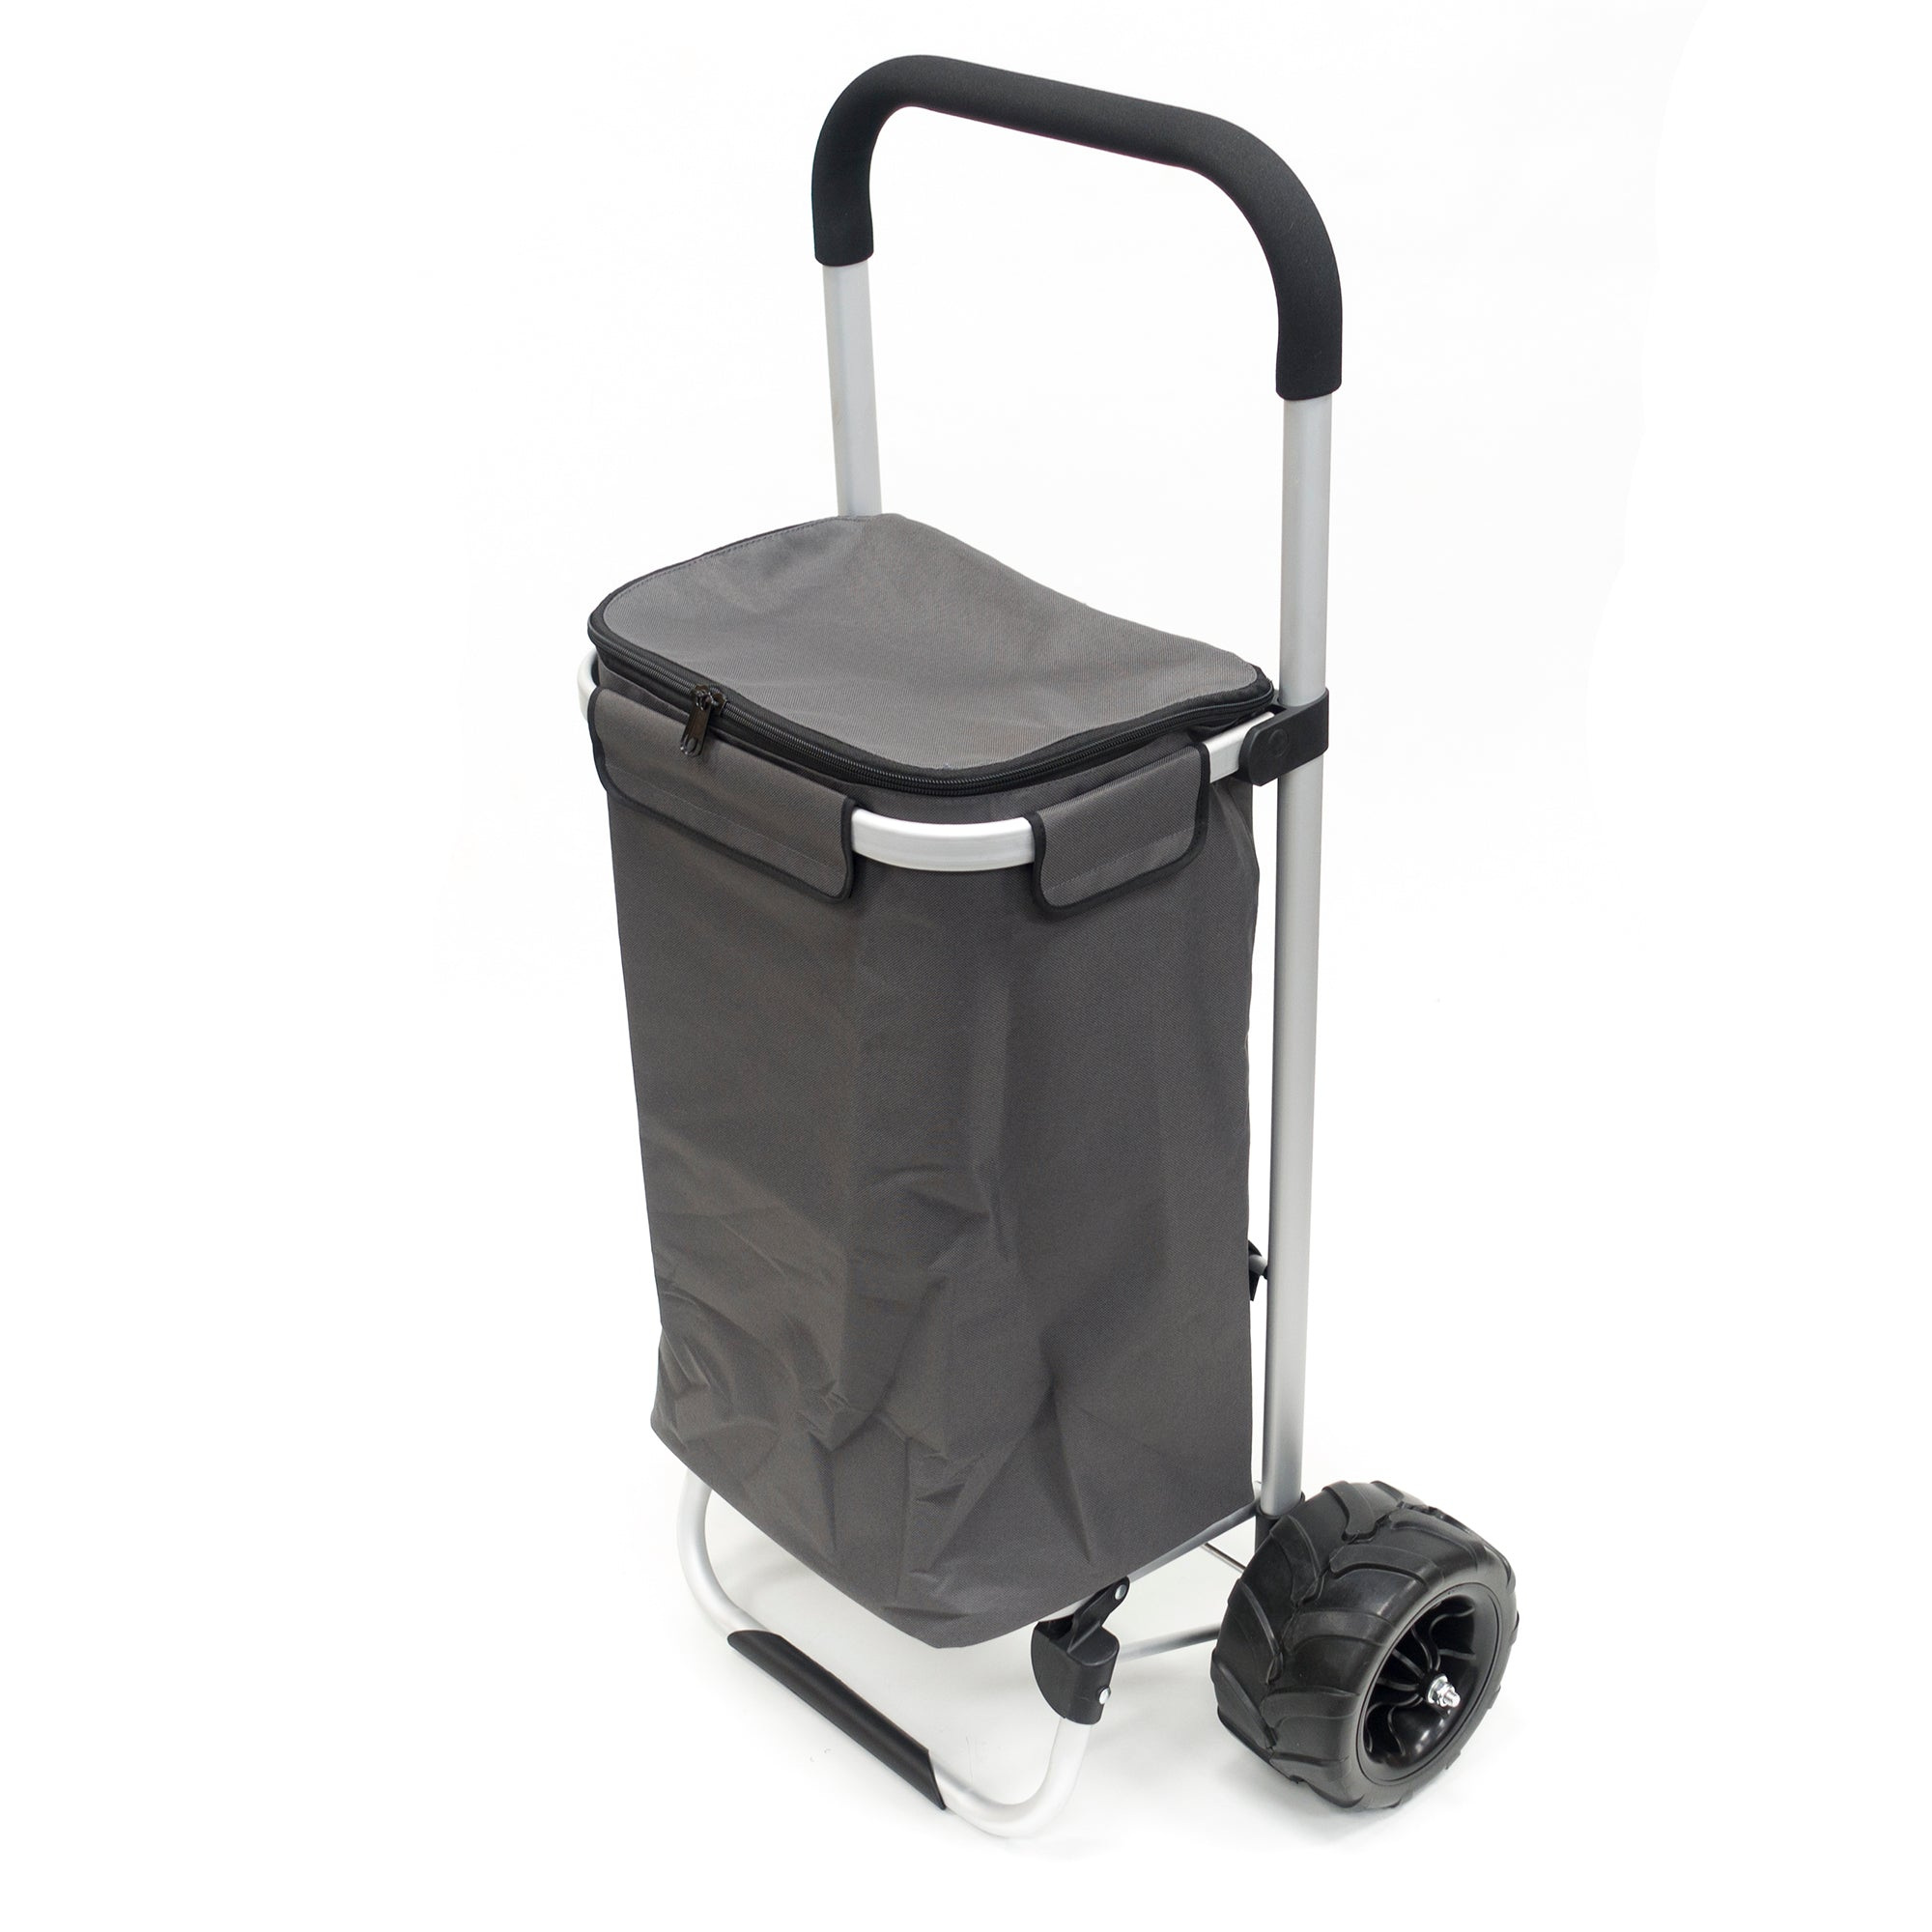 All-Terrain Folding Aluminum Trolley with Removable Zip-Top Bag